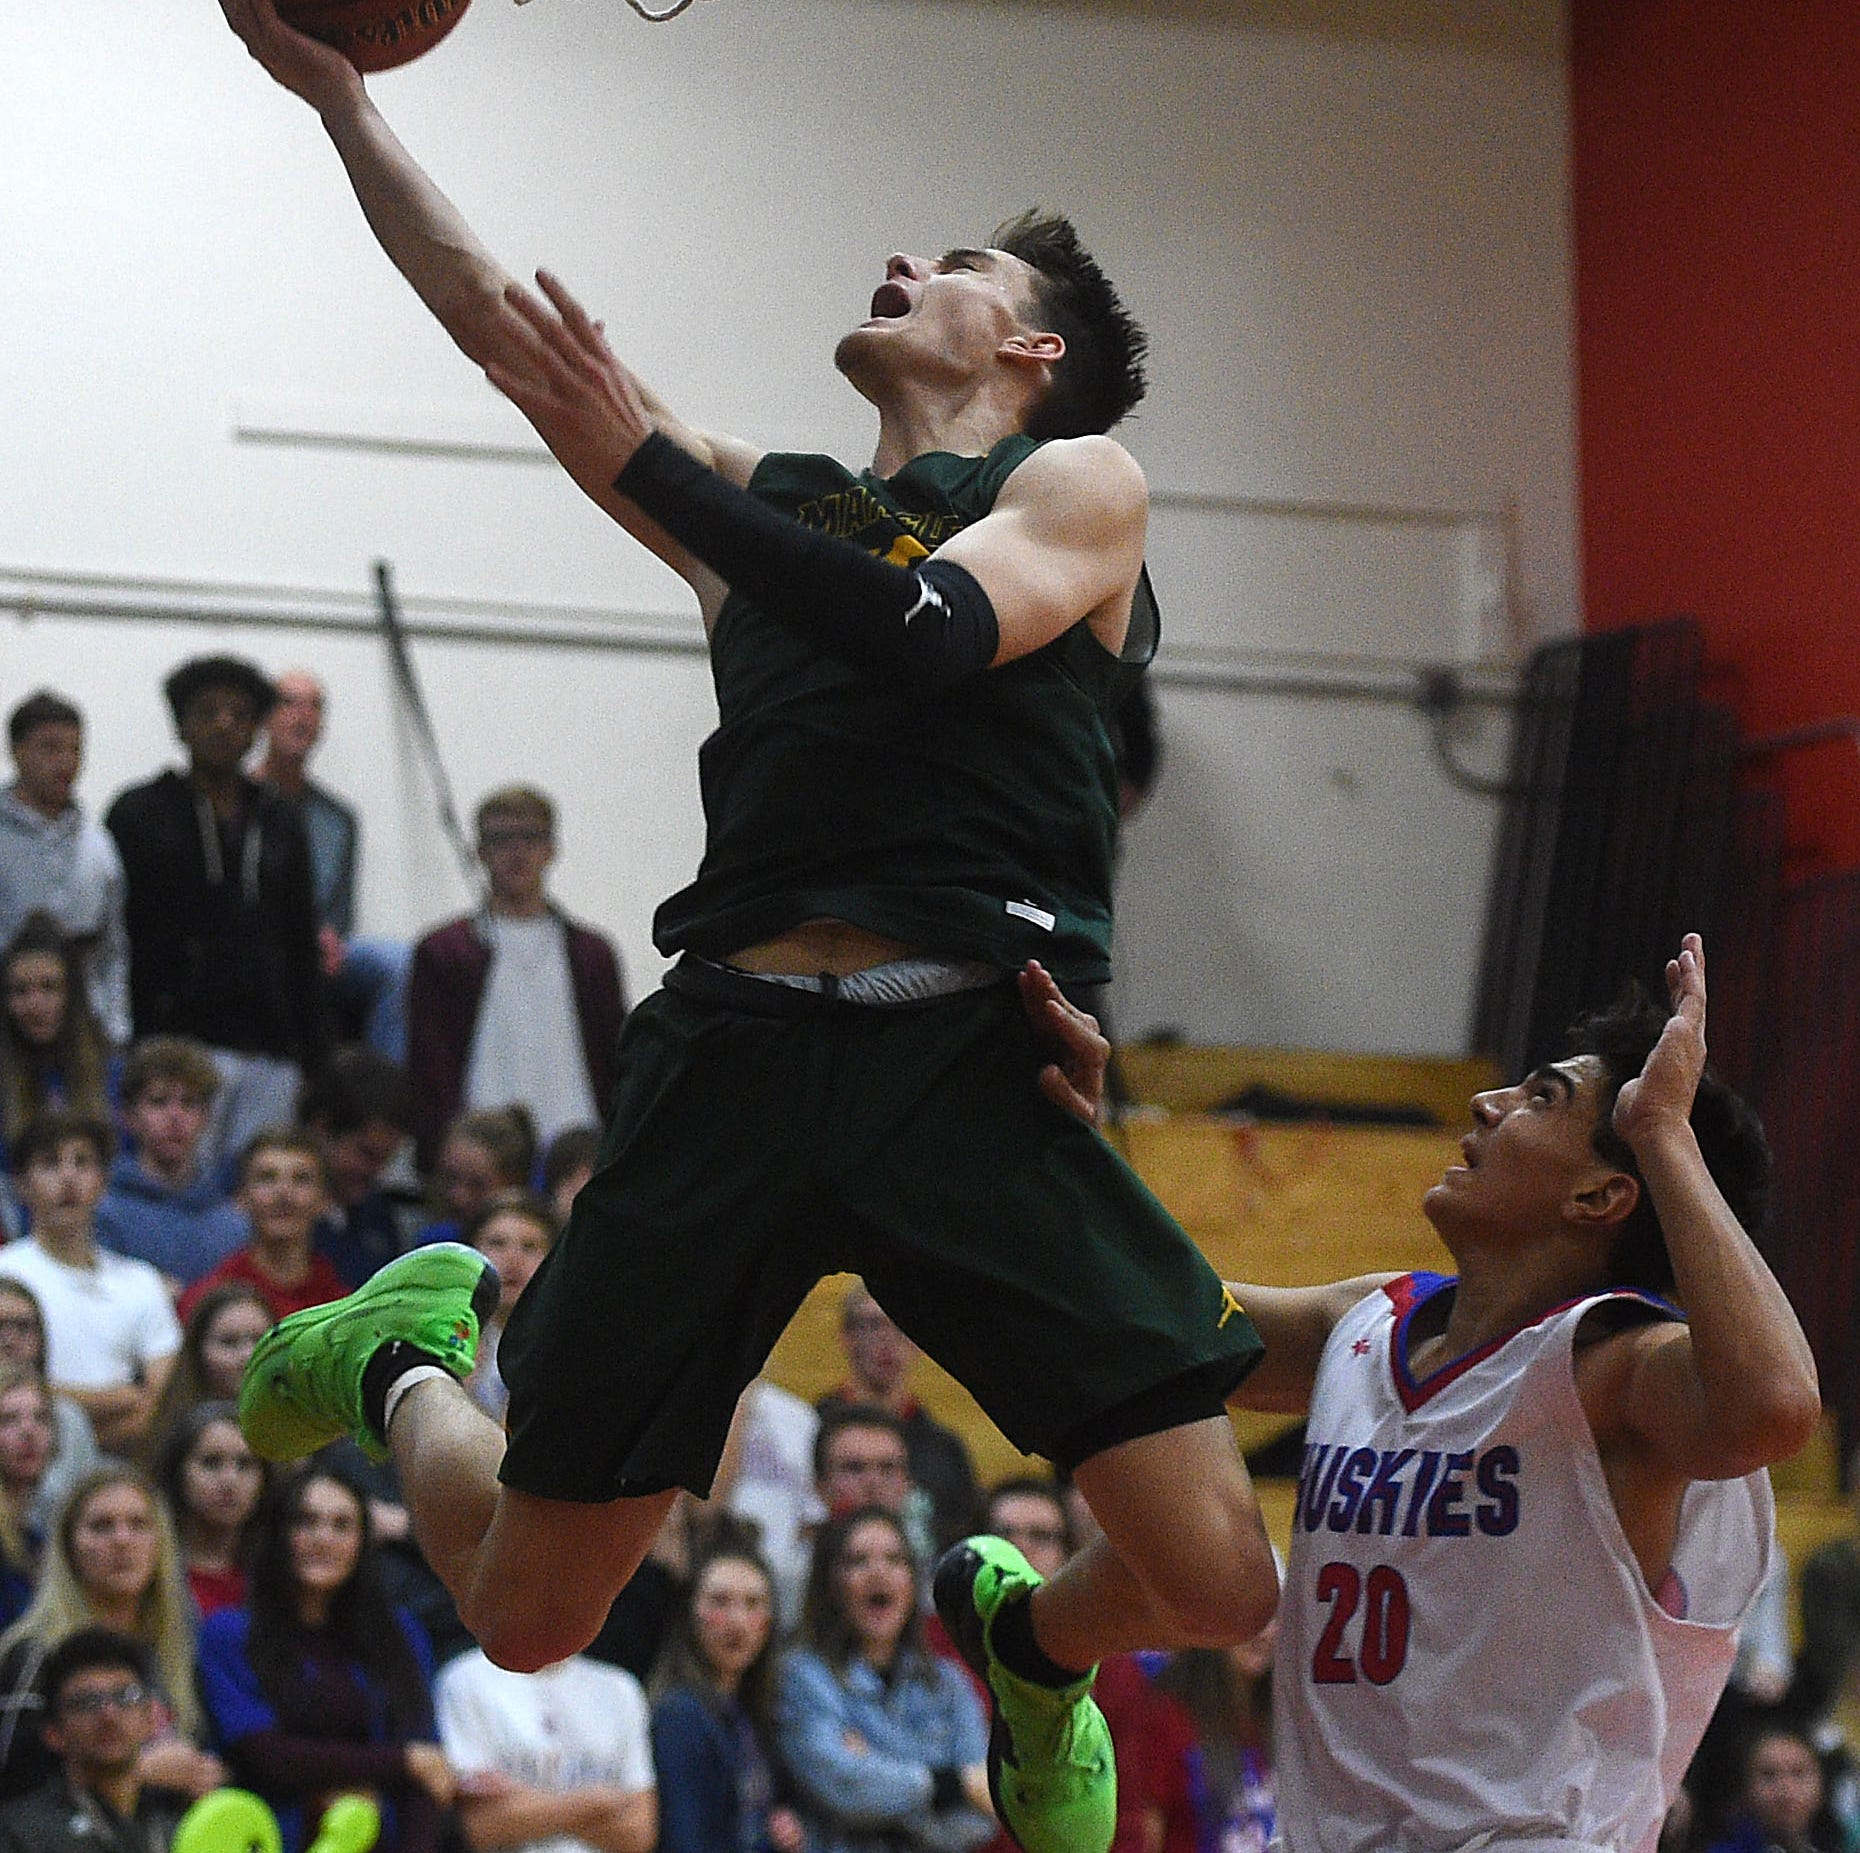 Prep basketball: Three teams are early contenders for the Northern 4A boys title